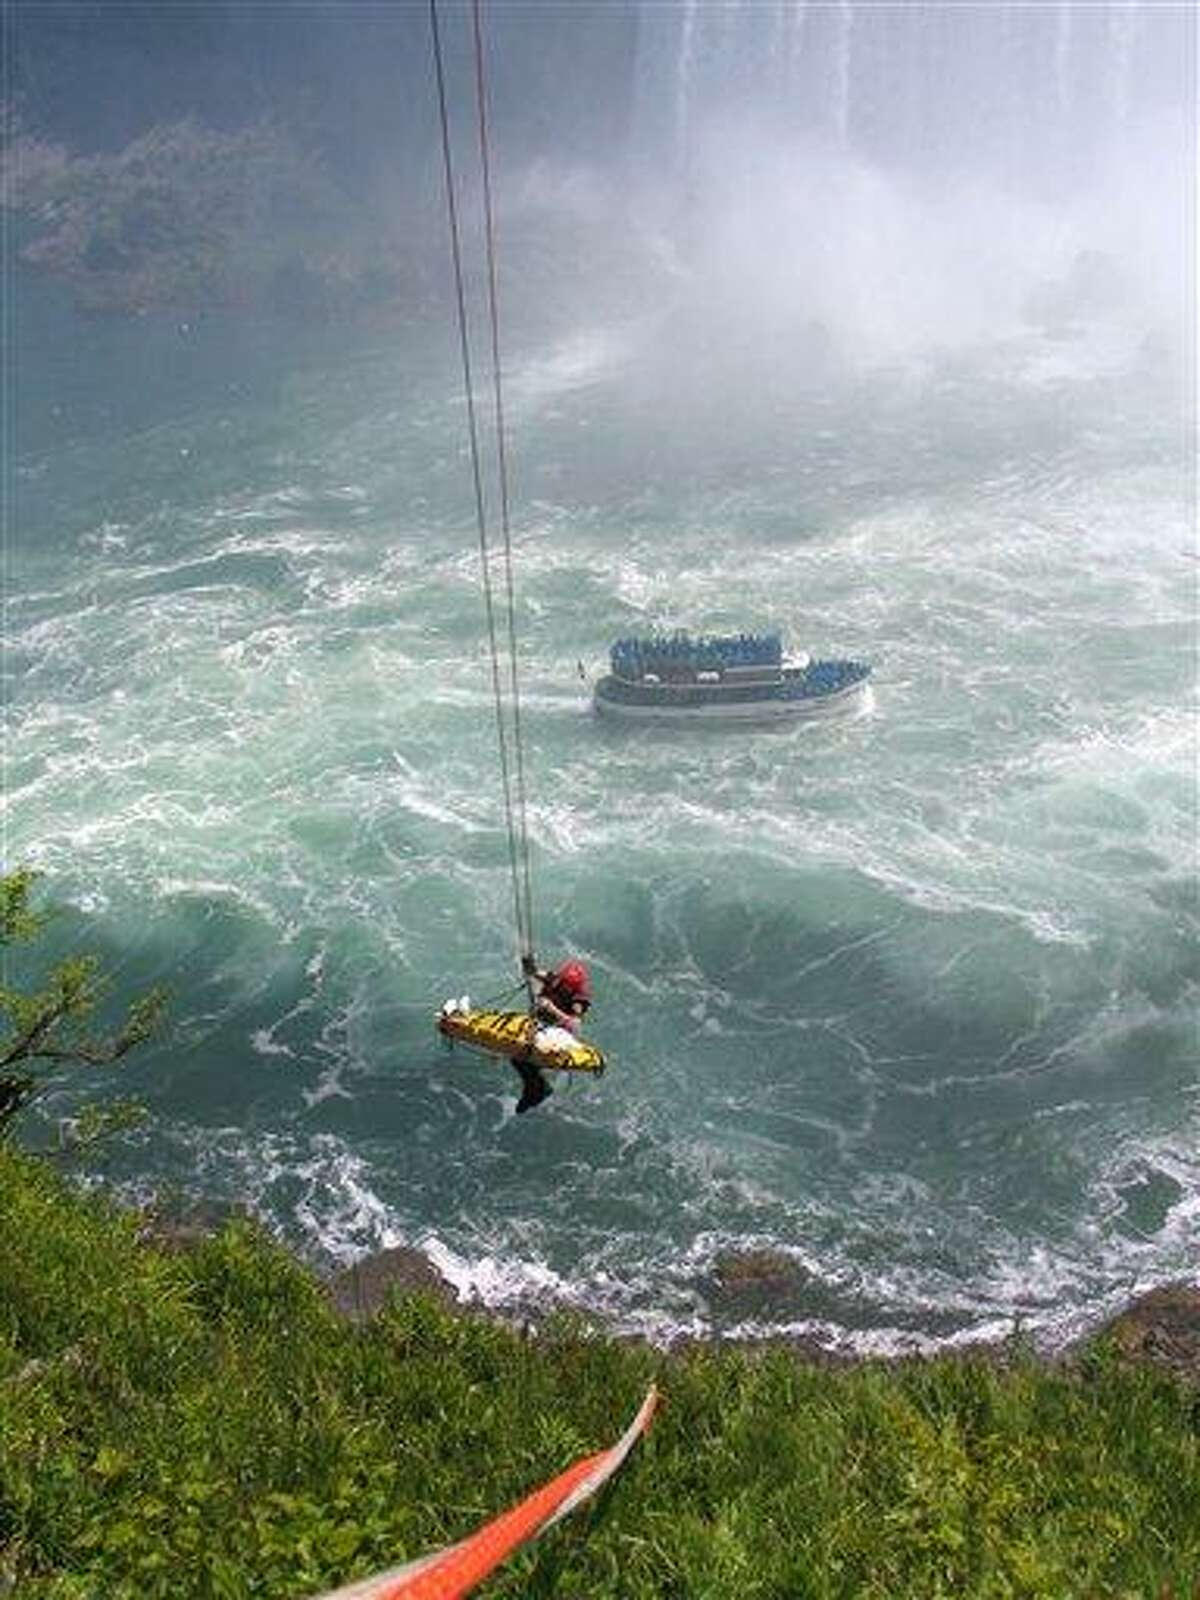 Niagara Falls emergency officials rescue a man who plunged over Niagara Falls and survived in an apparent suicide attempt, Monday. The man is only the third person known to have survived going over without a safety device. Associated Press